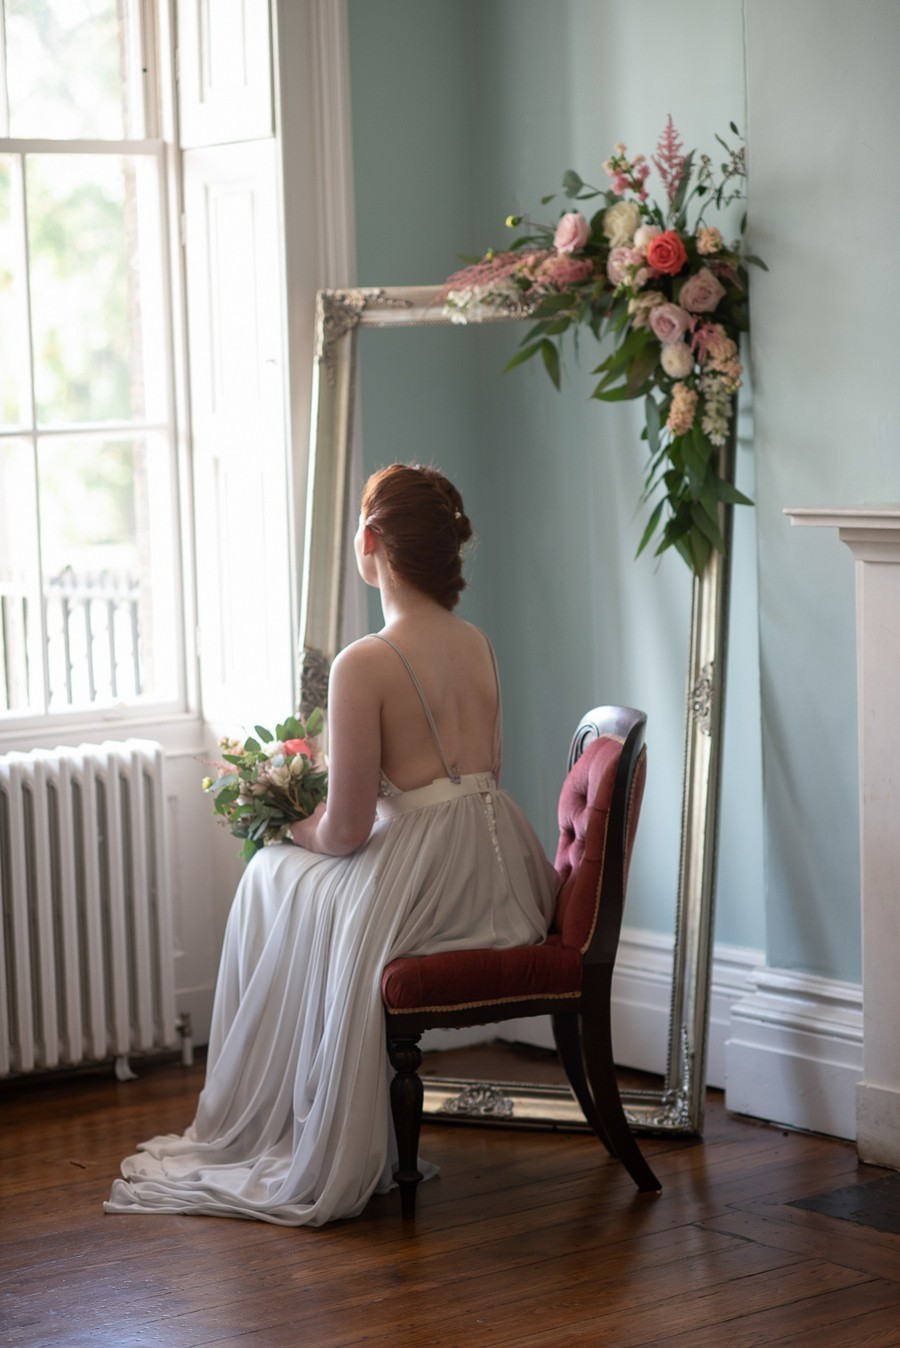 Beautiful fairytale wedding ideas from Clissold Park on English Wedding. Image credit Eva Tarnok Photography (20)